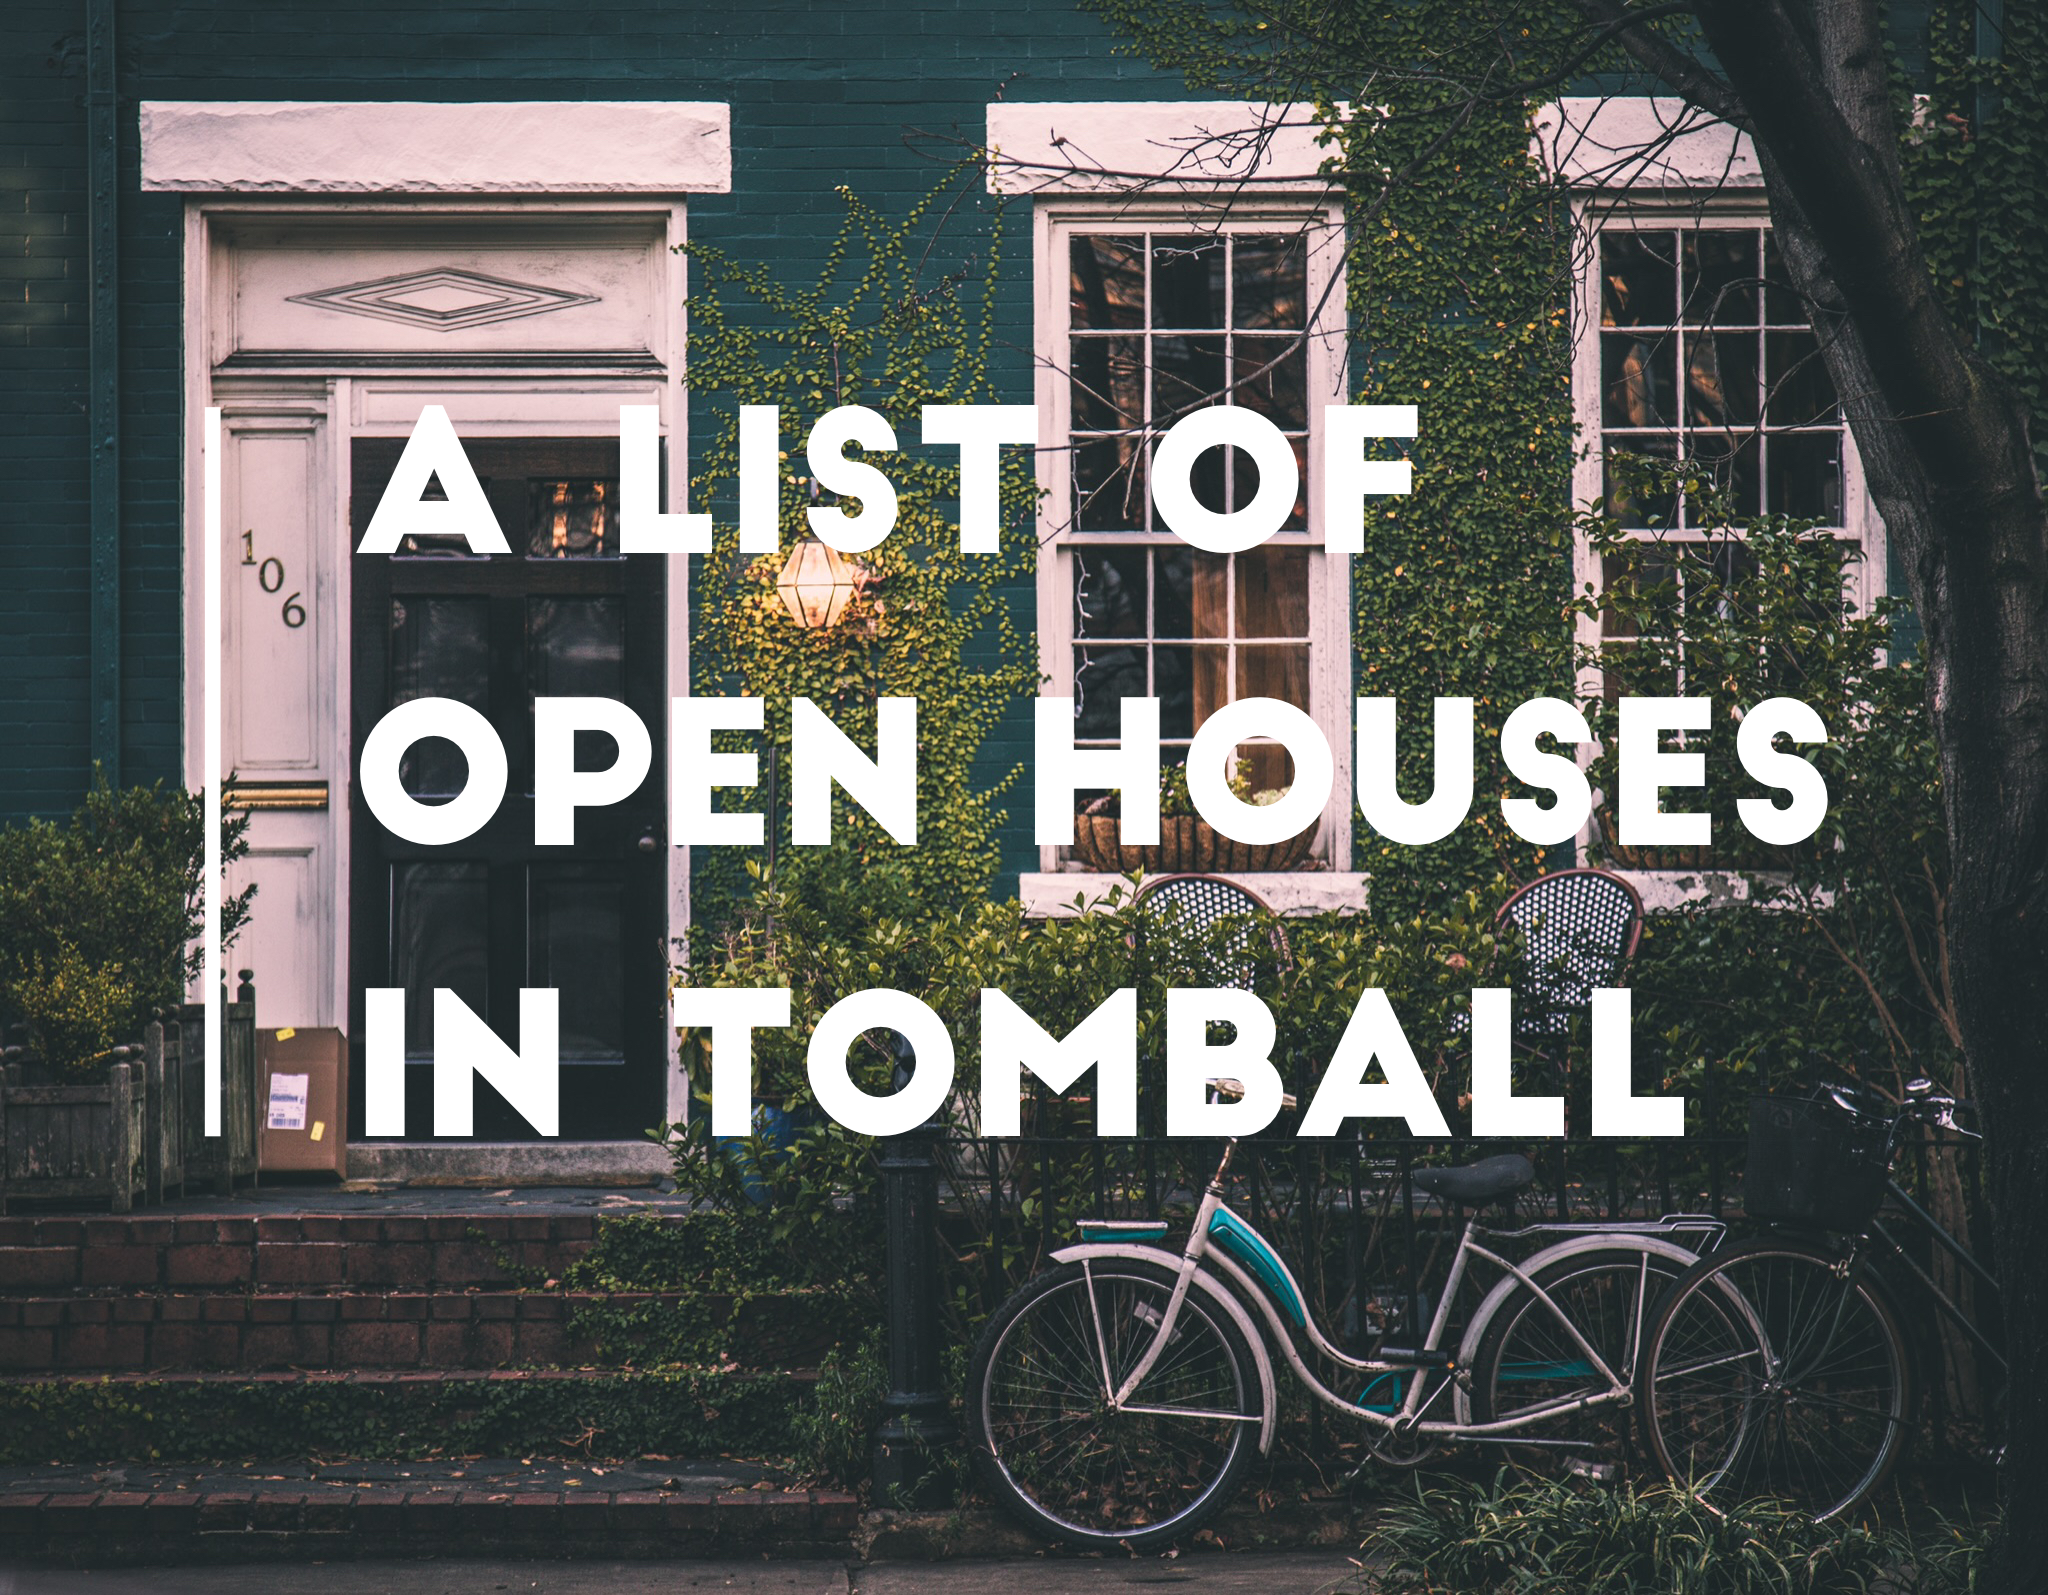 a list of open houses in the tomball tx texas relocating real estate agent realtor brokerage jo & co realty group jordan schilleci